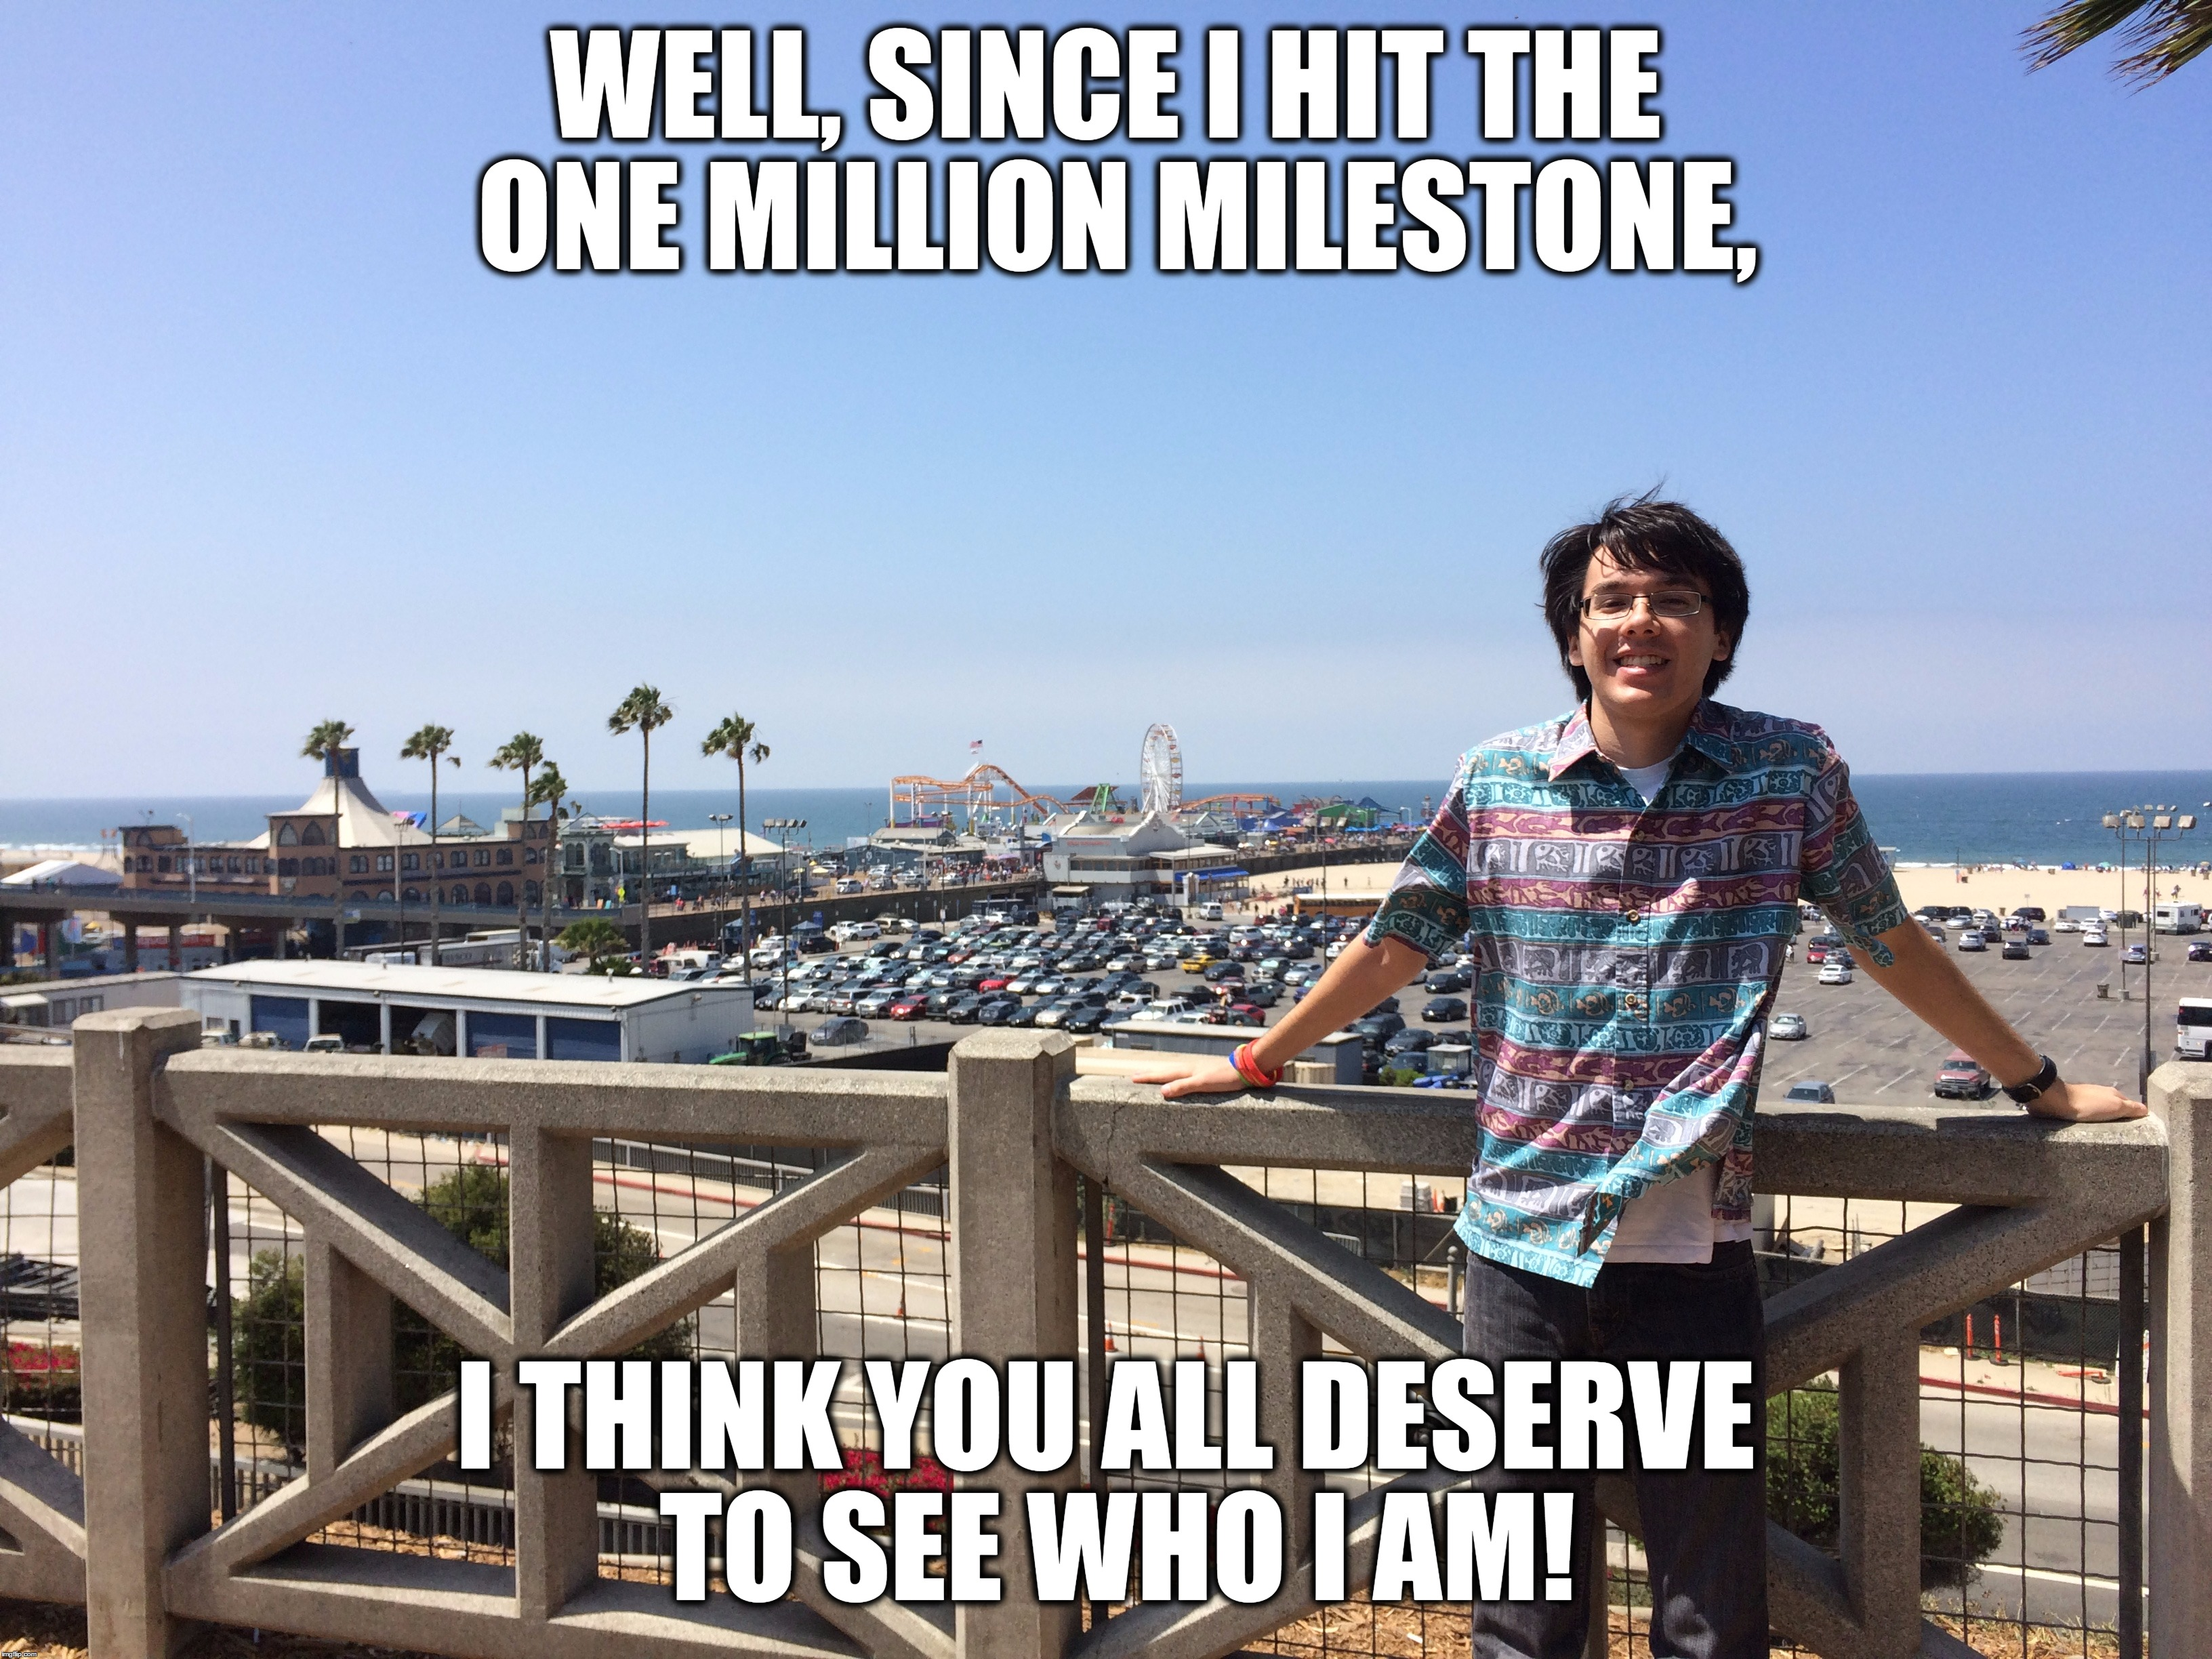 The Moment You All Been Waiting For!  | WELL, SINCE I HIT THE ONE MILLION MILESTONE, I THINK YOU ALL DESERVE TO SEE WHO I AM! | image tagged in memes,juicydeath1025,santa monica,beach,one million points,thank you | made w/ Imgflip meme maker